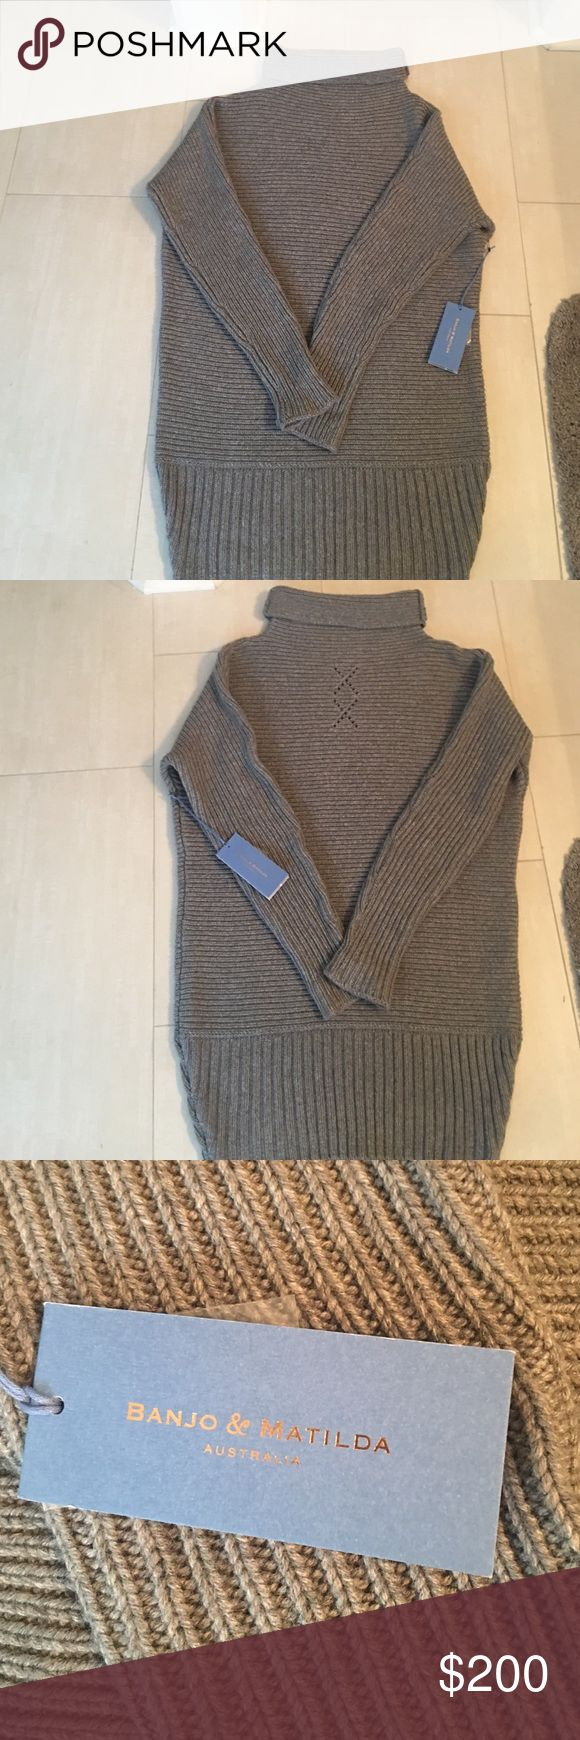 Brand new banjo and Matilda horizontal rib tunic Brand new banjo and Matilda Long horizontal rib tunic with tags. Never worn. Expensive brand from Australia. Size on this is S/M. Sweaters Cowl & Turtlenecks